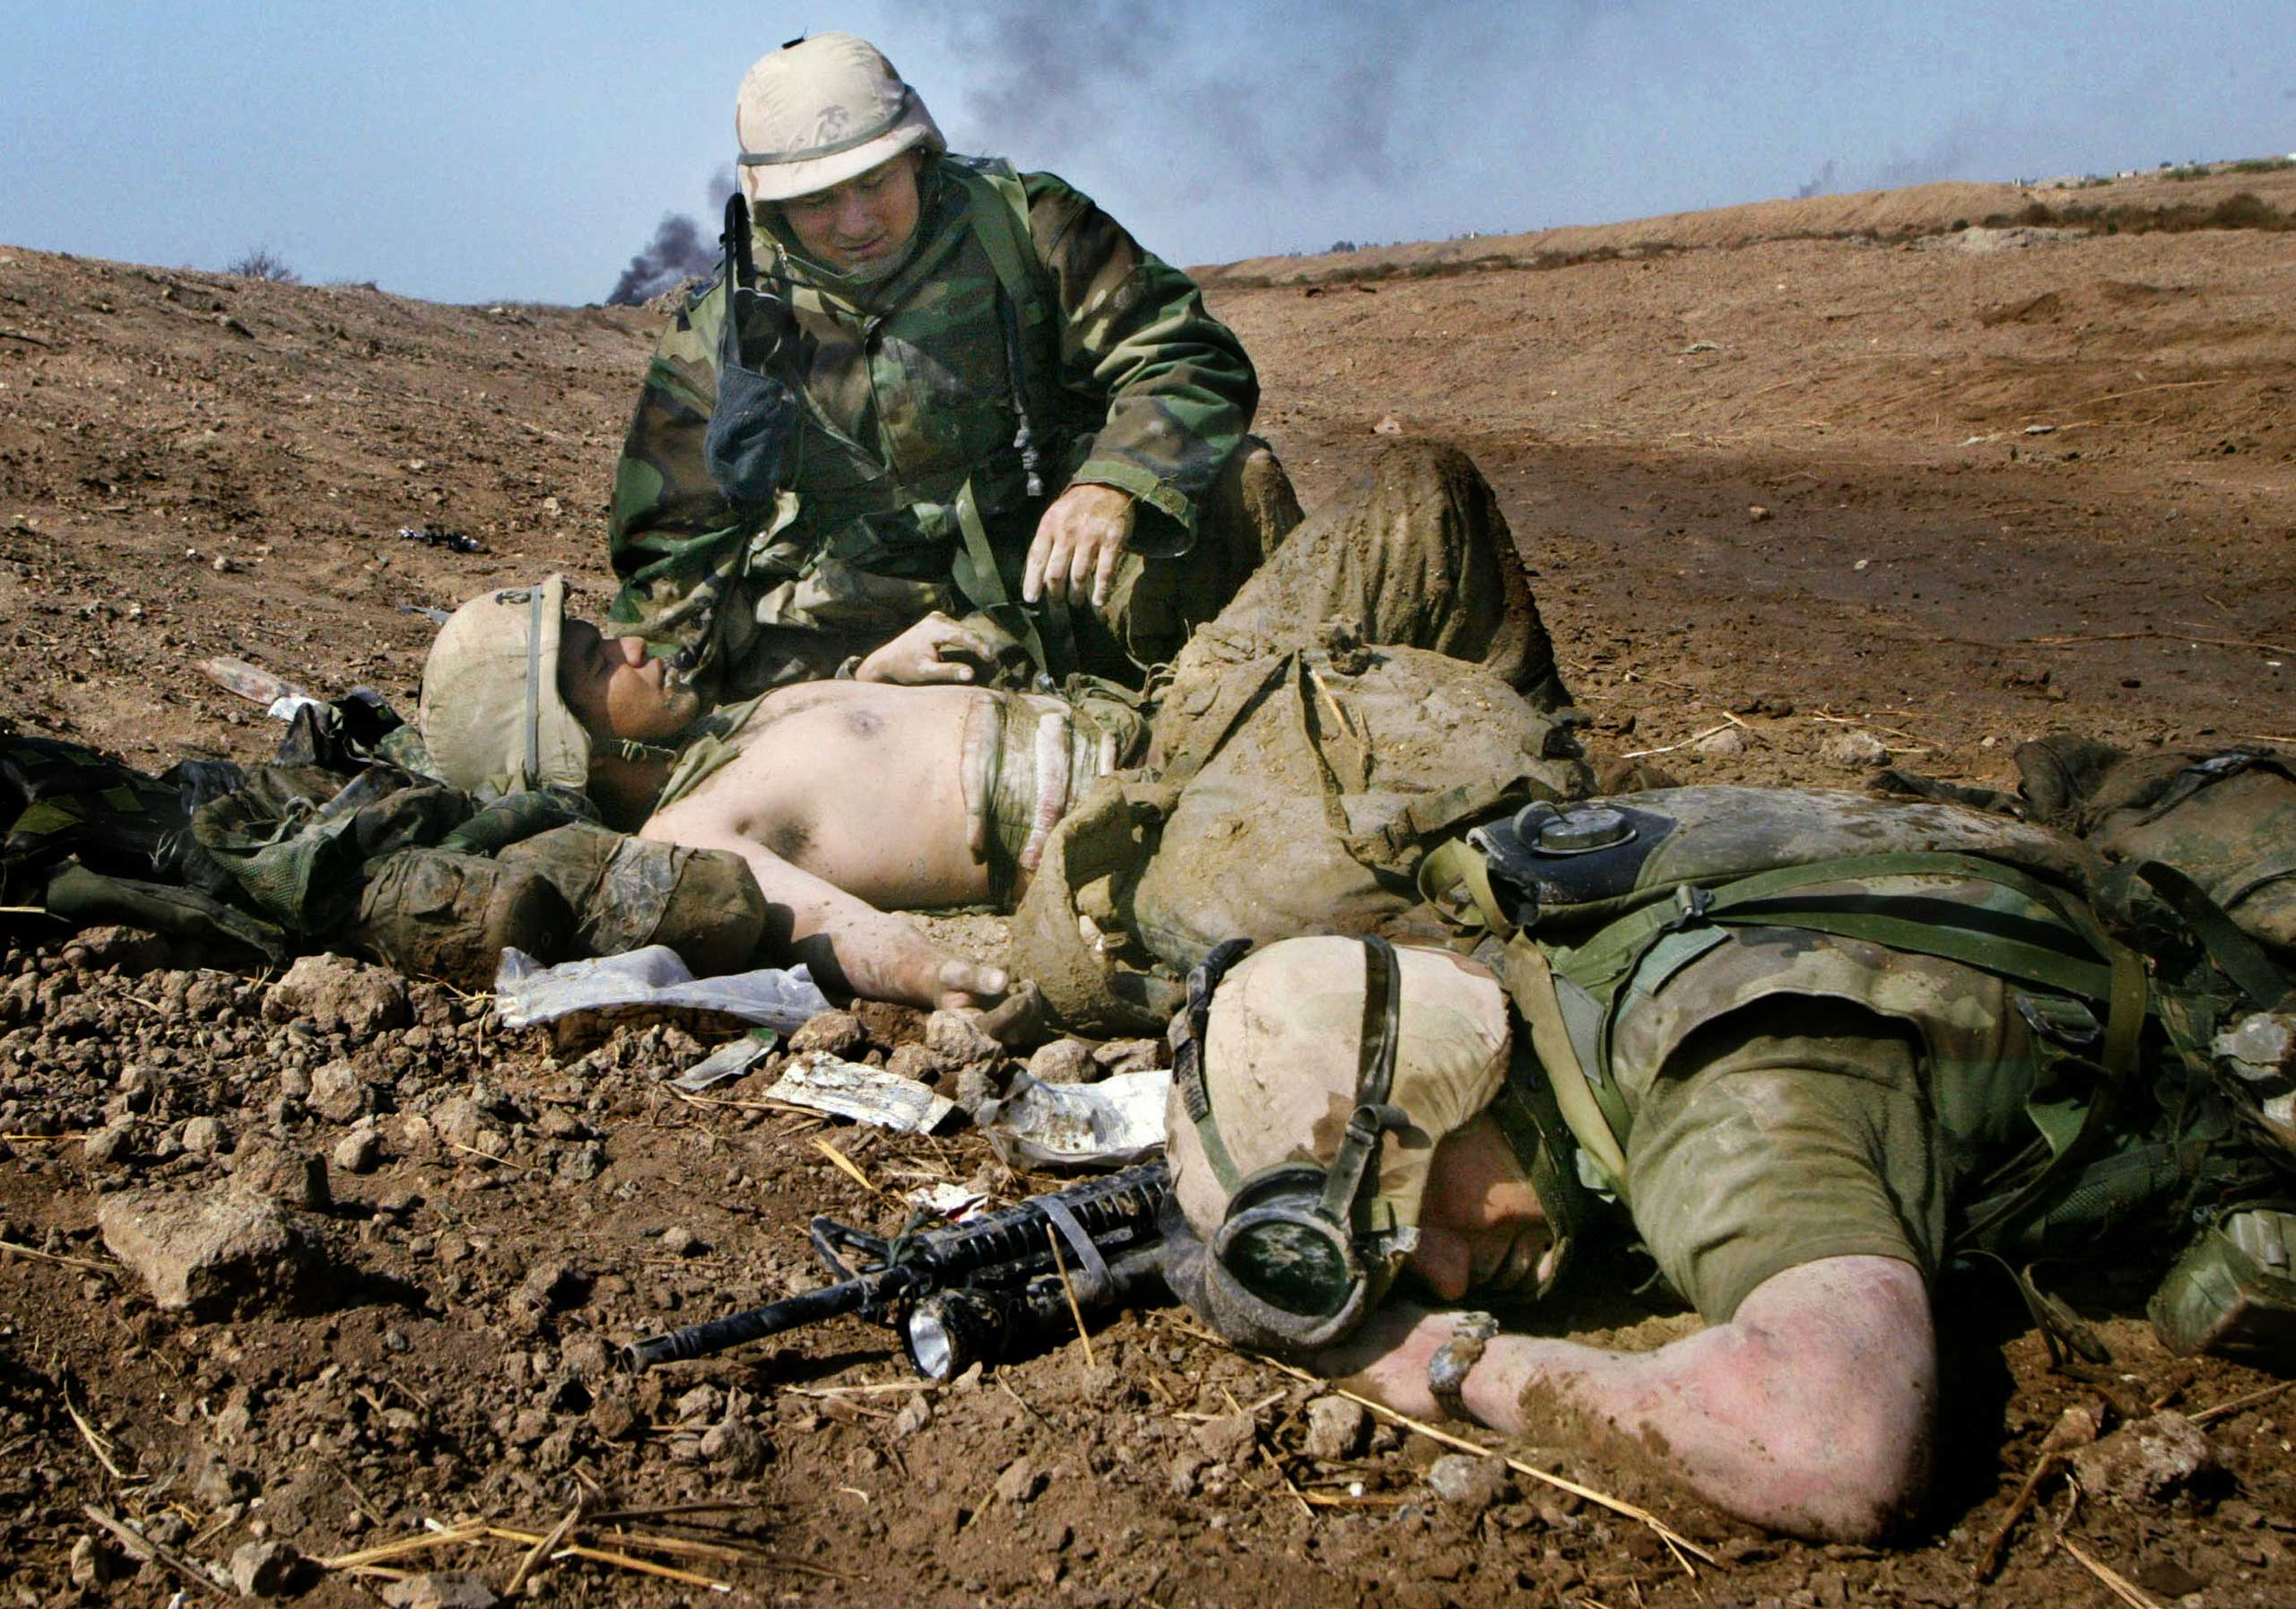 <b>Joe Raedle, March 23, 2003                                   </b>                                   Ten years ago, I was in the desert of southern Iraq, documenting the lives of U.S. Marines from Task Force Tarawa 1/2 Charlie Company as they fought in the town of Nasiriyah at the start of the war.                                    It was the first major battle these young Marines had encountered. They lost 18 fellow Marines and 14 more were wounded in the bloody fight. I saw these kids become men in a matter of hours. All the bravado, adrenaline and laughter that came with the first few days of driving across the desert to their objective -- which was to secure a bridge to provide a route for the rest of the invading forces -- changed with the chaos and carnage of combat. Anticipation was replaced by fear, confusion, yelling and the smell of gunfire and smoke. This picture of the wounded Marine seems so fleeting. But looking at it again 10 years later brings me right back to the moment when I was laying on the ground next to them as the battle crackled around.